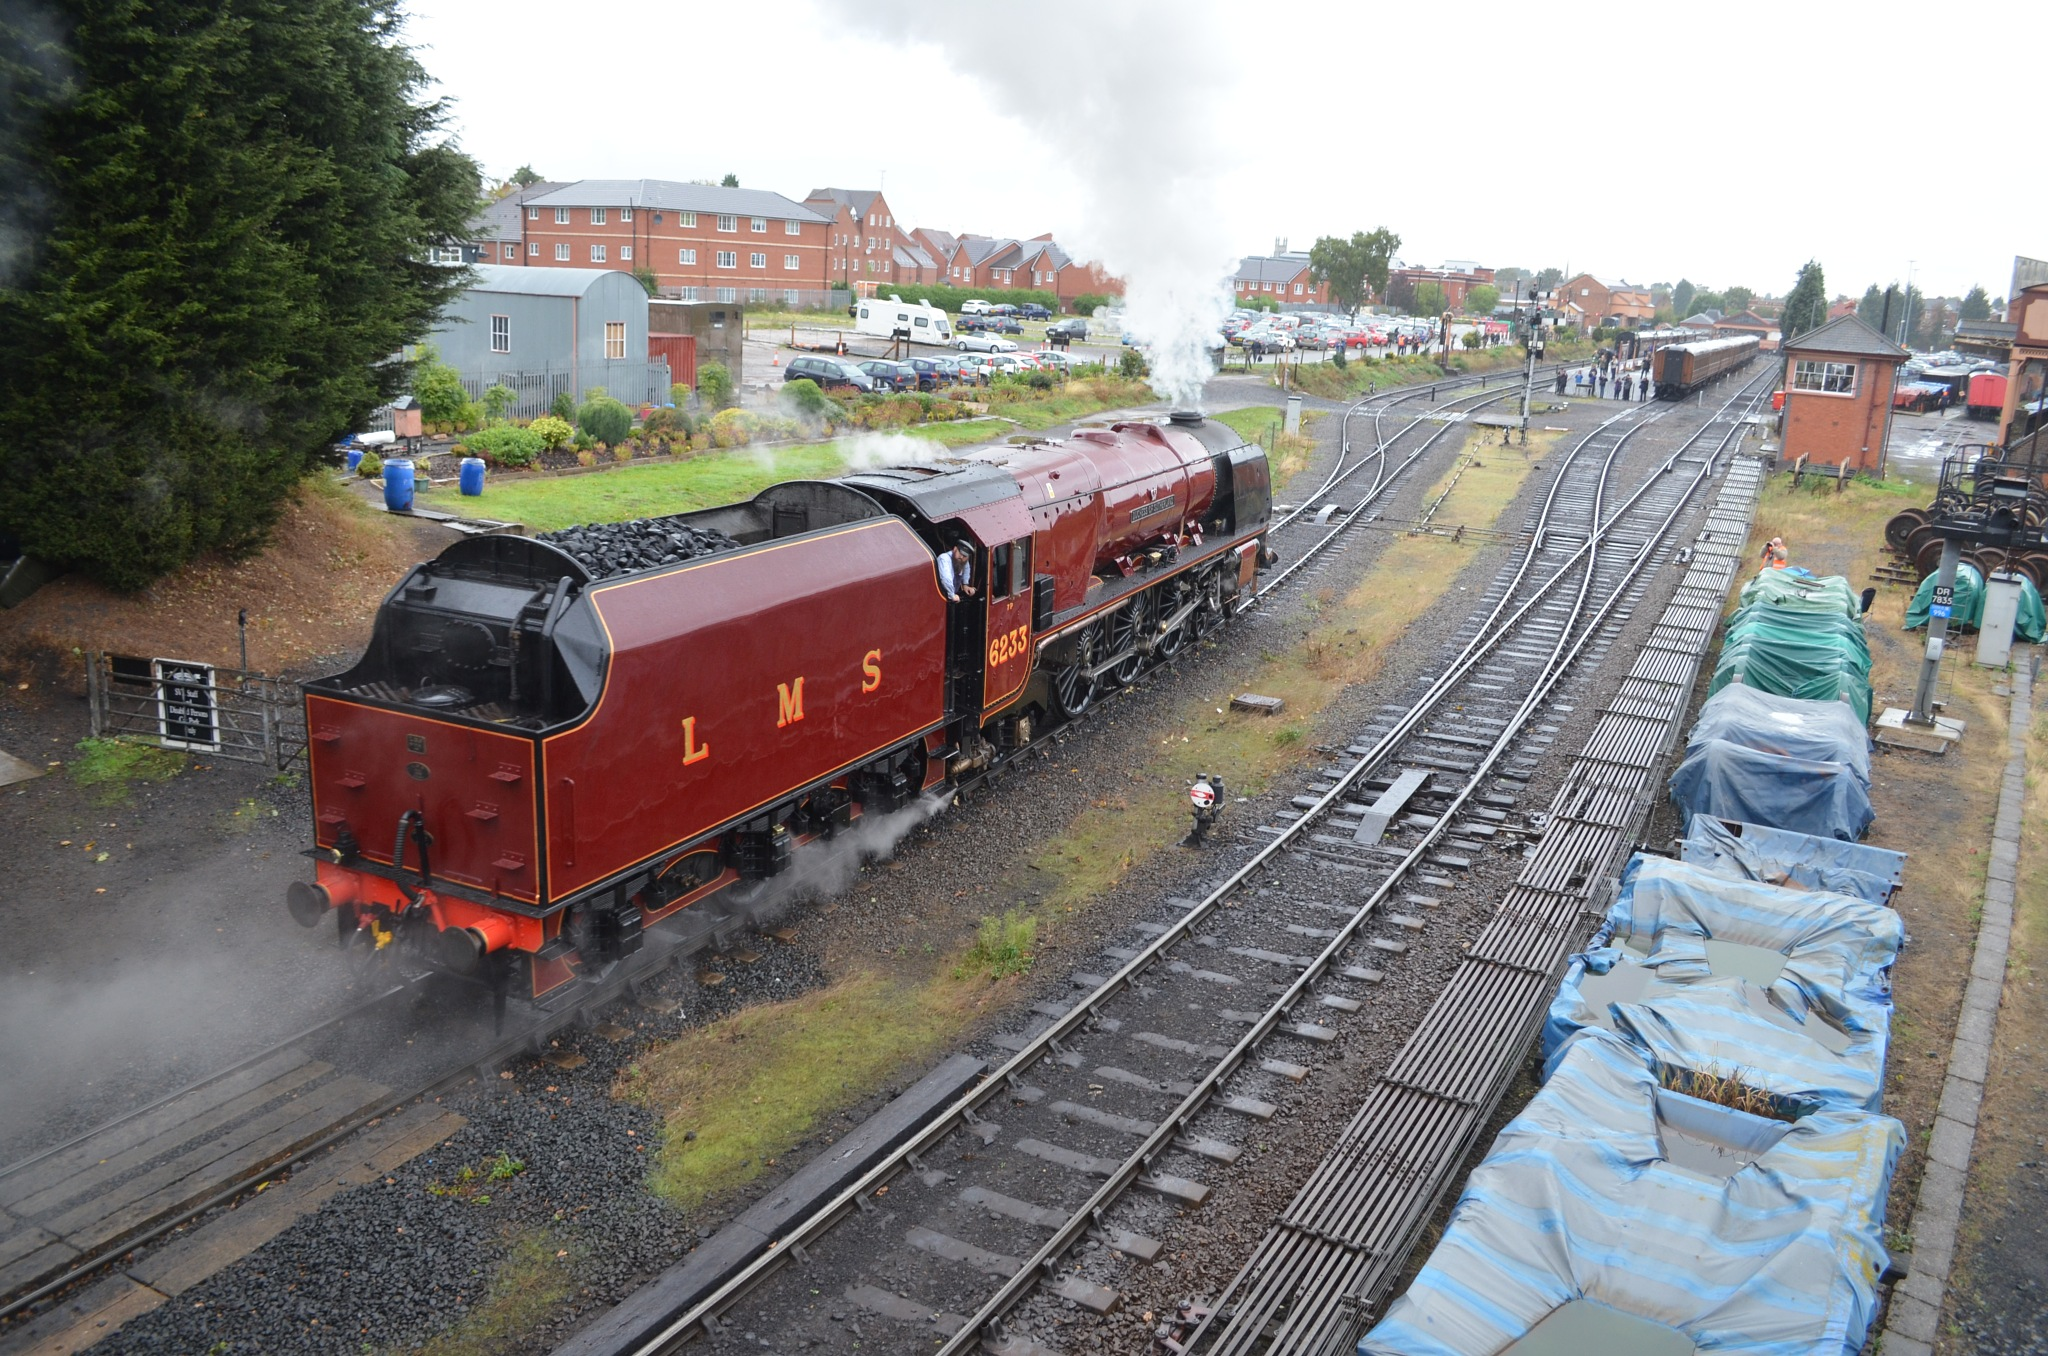 The Duchess coming from Bewdley by adrian.williams.58323